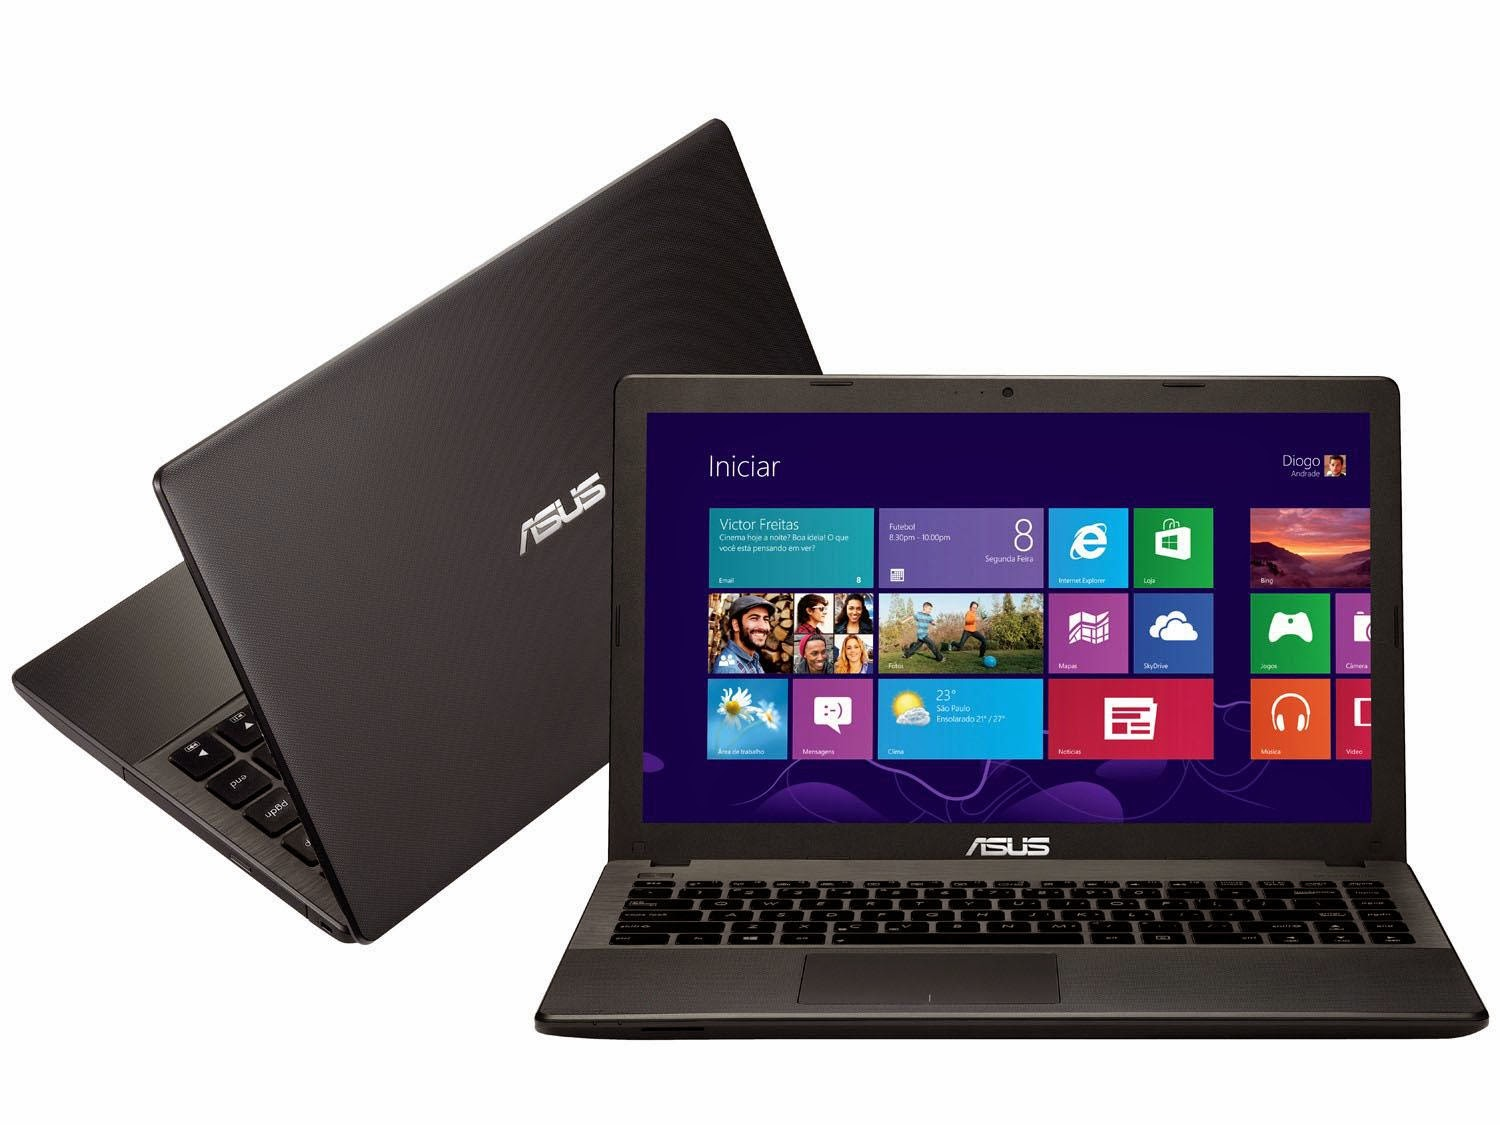 Asus X755JA Driver Download For Windows 10. EMI and Safety,BIOS,BIOS-Utilities,Chipset,ATK,VGA,LAN,TouchPad,Wireless,BlueTooth,Card-Reader,HotFix,Utilities,Othe